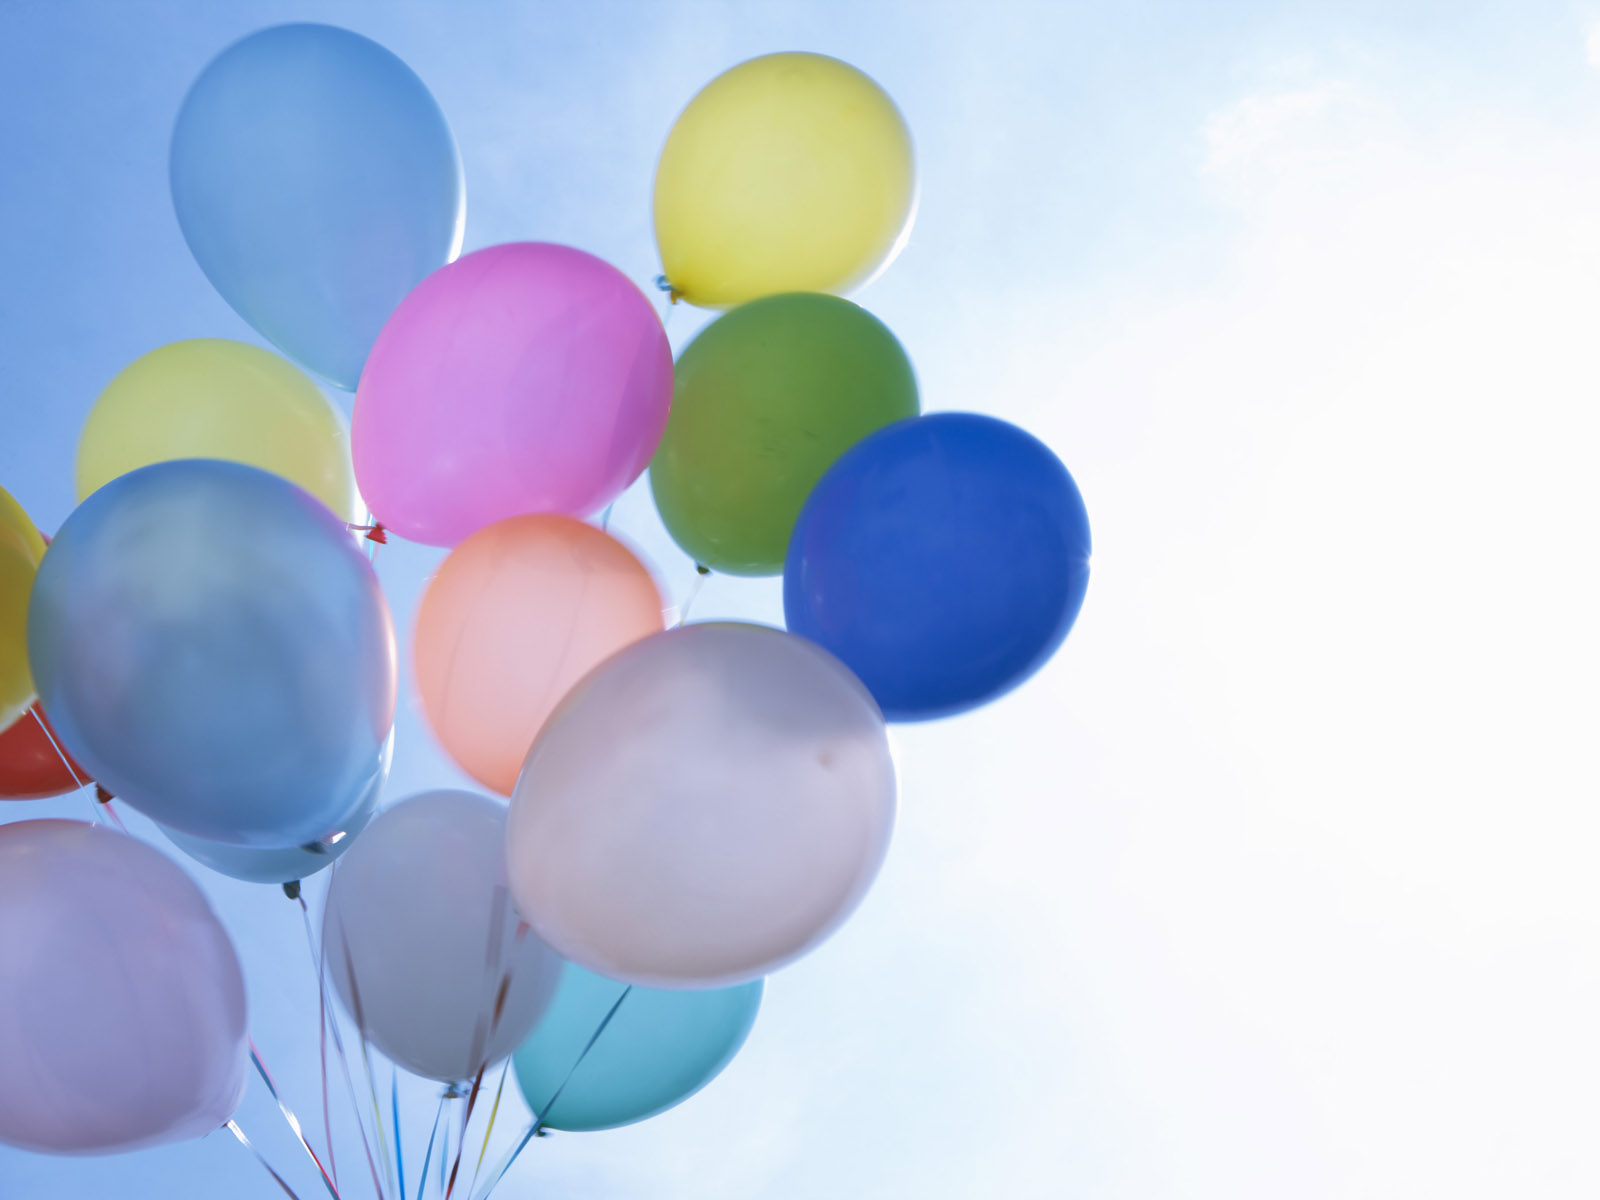 Birthday balloon backgrounds Tops Wallpapers Gallery 1600x1200